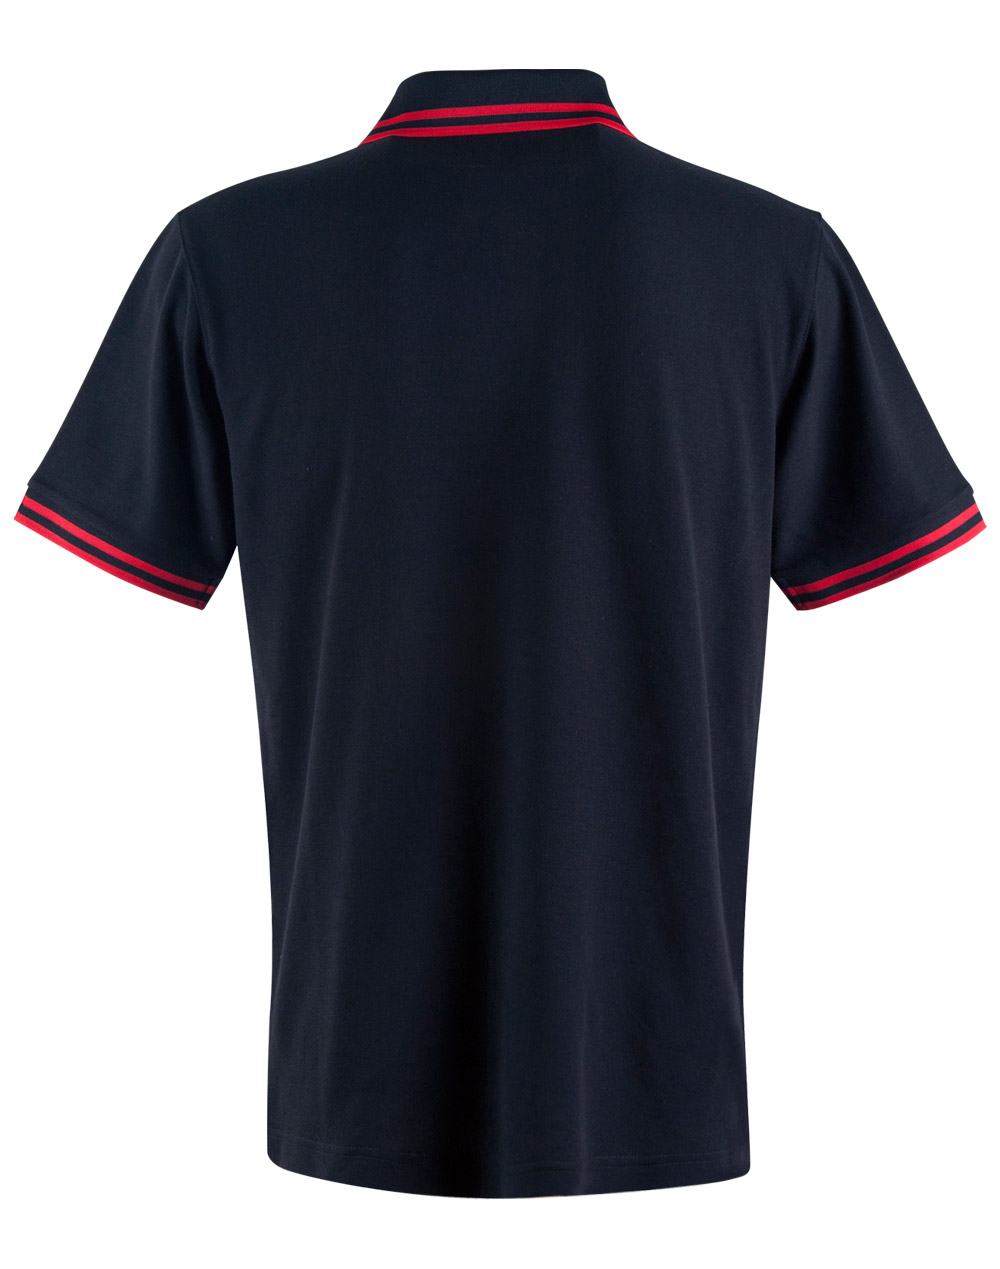 https://s3-ap-southeast-1.amazonaws.com/ws-imgs/POLOSHIRTS/PS65_BlackRed_Back.jpg